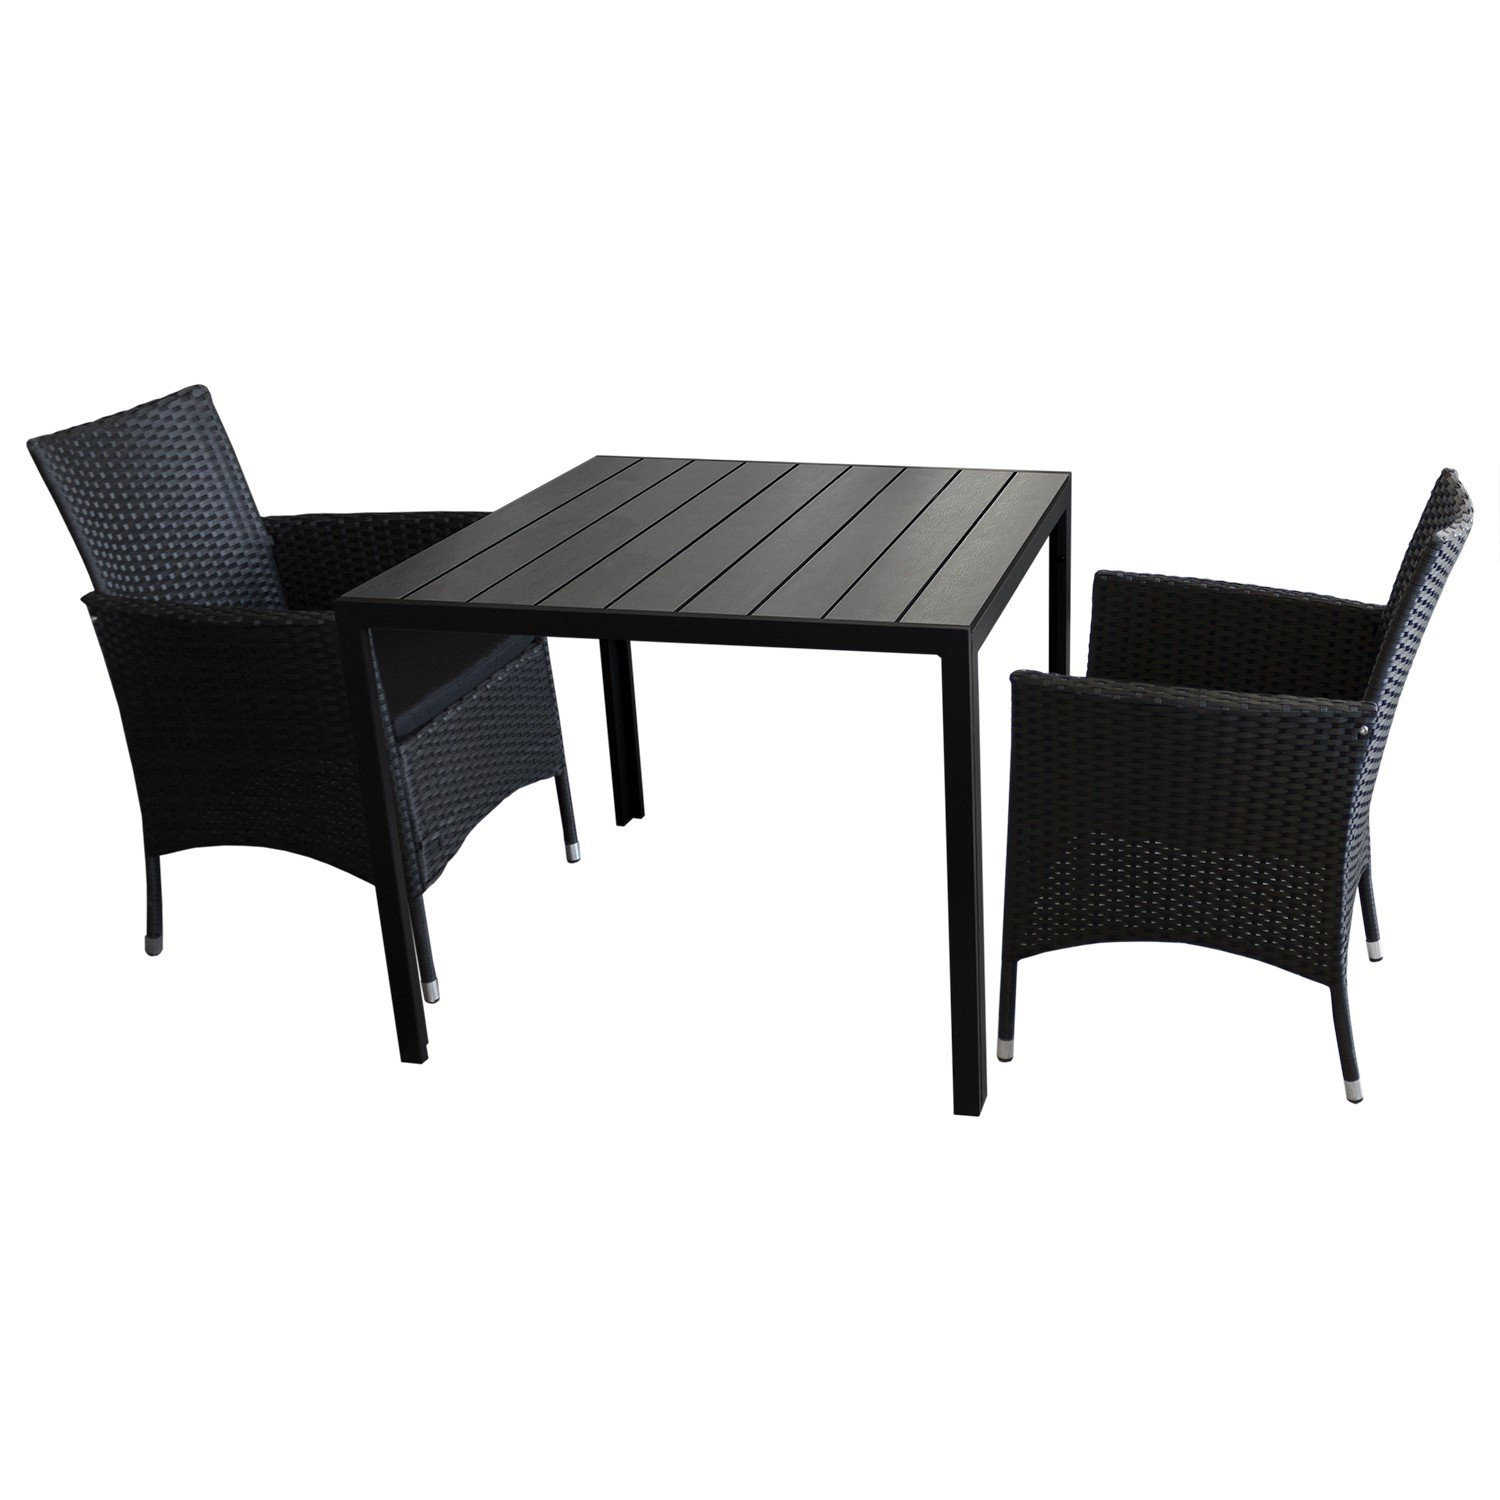 3tlg balkonm bel bistro set gartenm bel sitzgruppe gartentisch polywood tischplatte schwarz. Black Bedroom Furniture Sets. Home Design Ideas